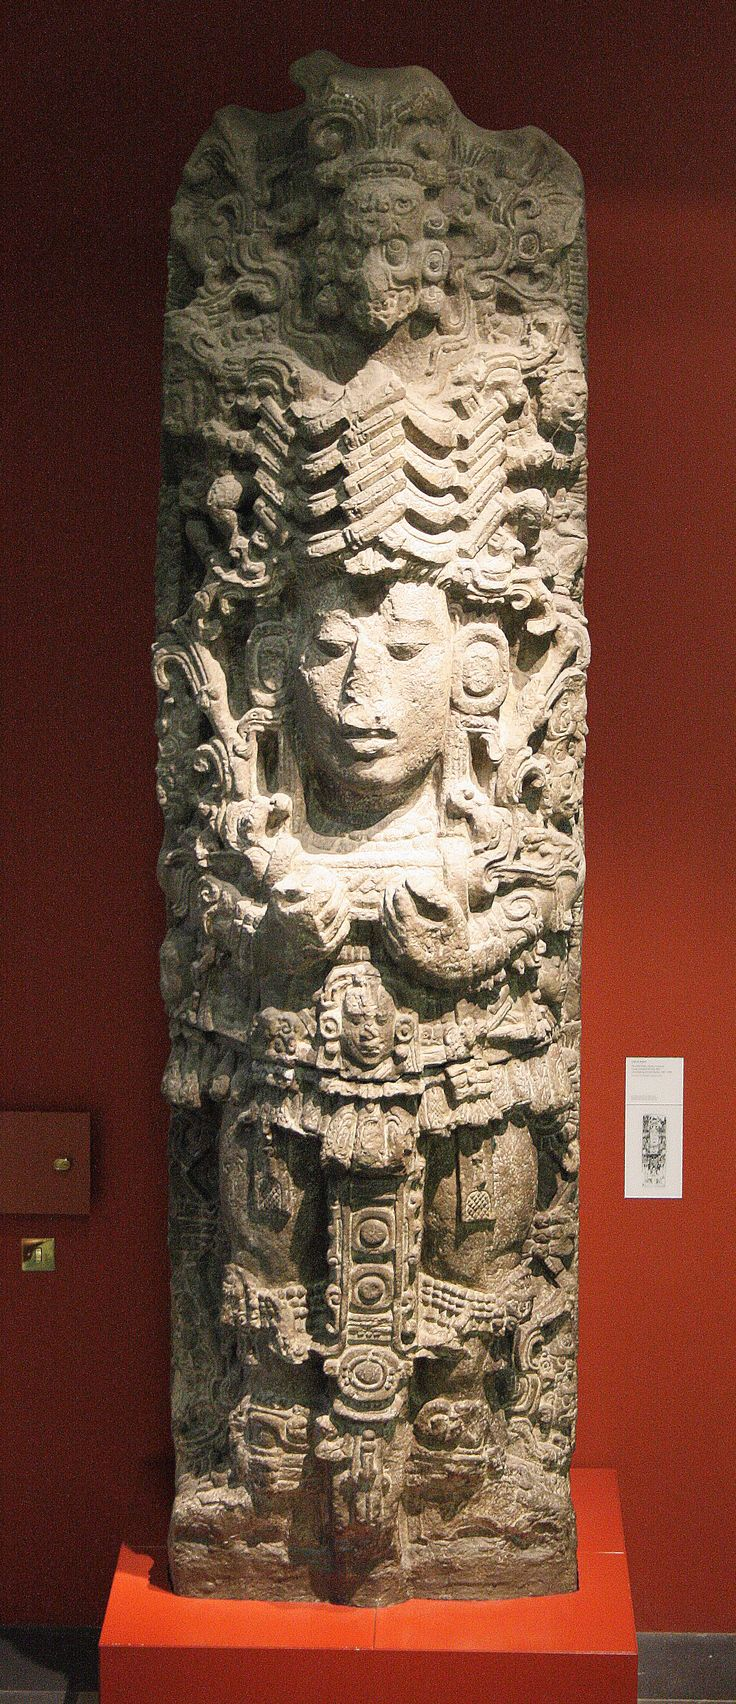 Early American civilizations, most notably the Aztecs, Incas, and Mayans Essay Sample